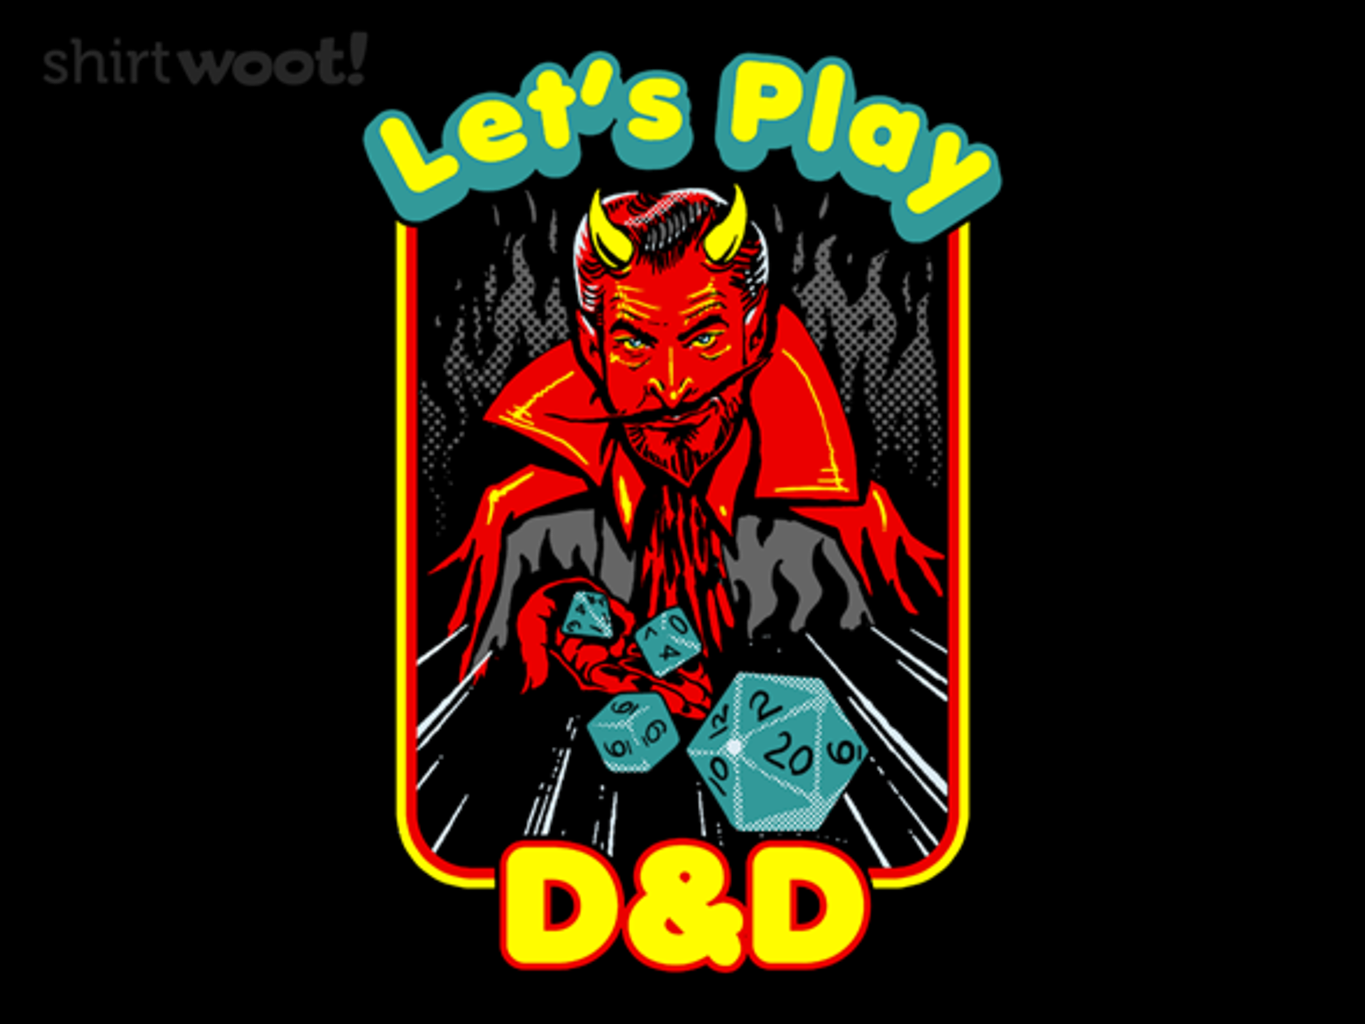 Woot!: Let's Play D&D